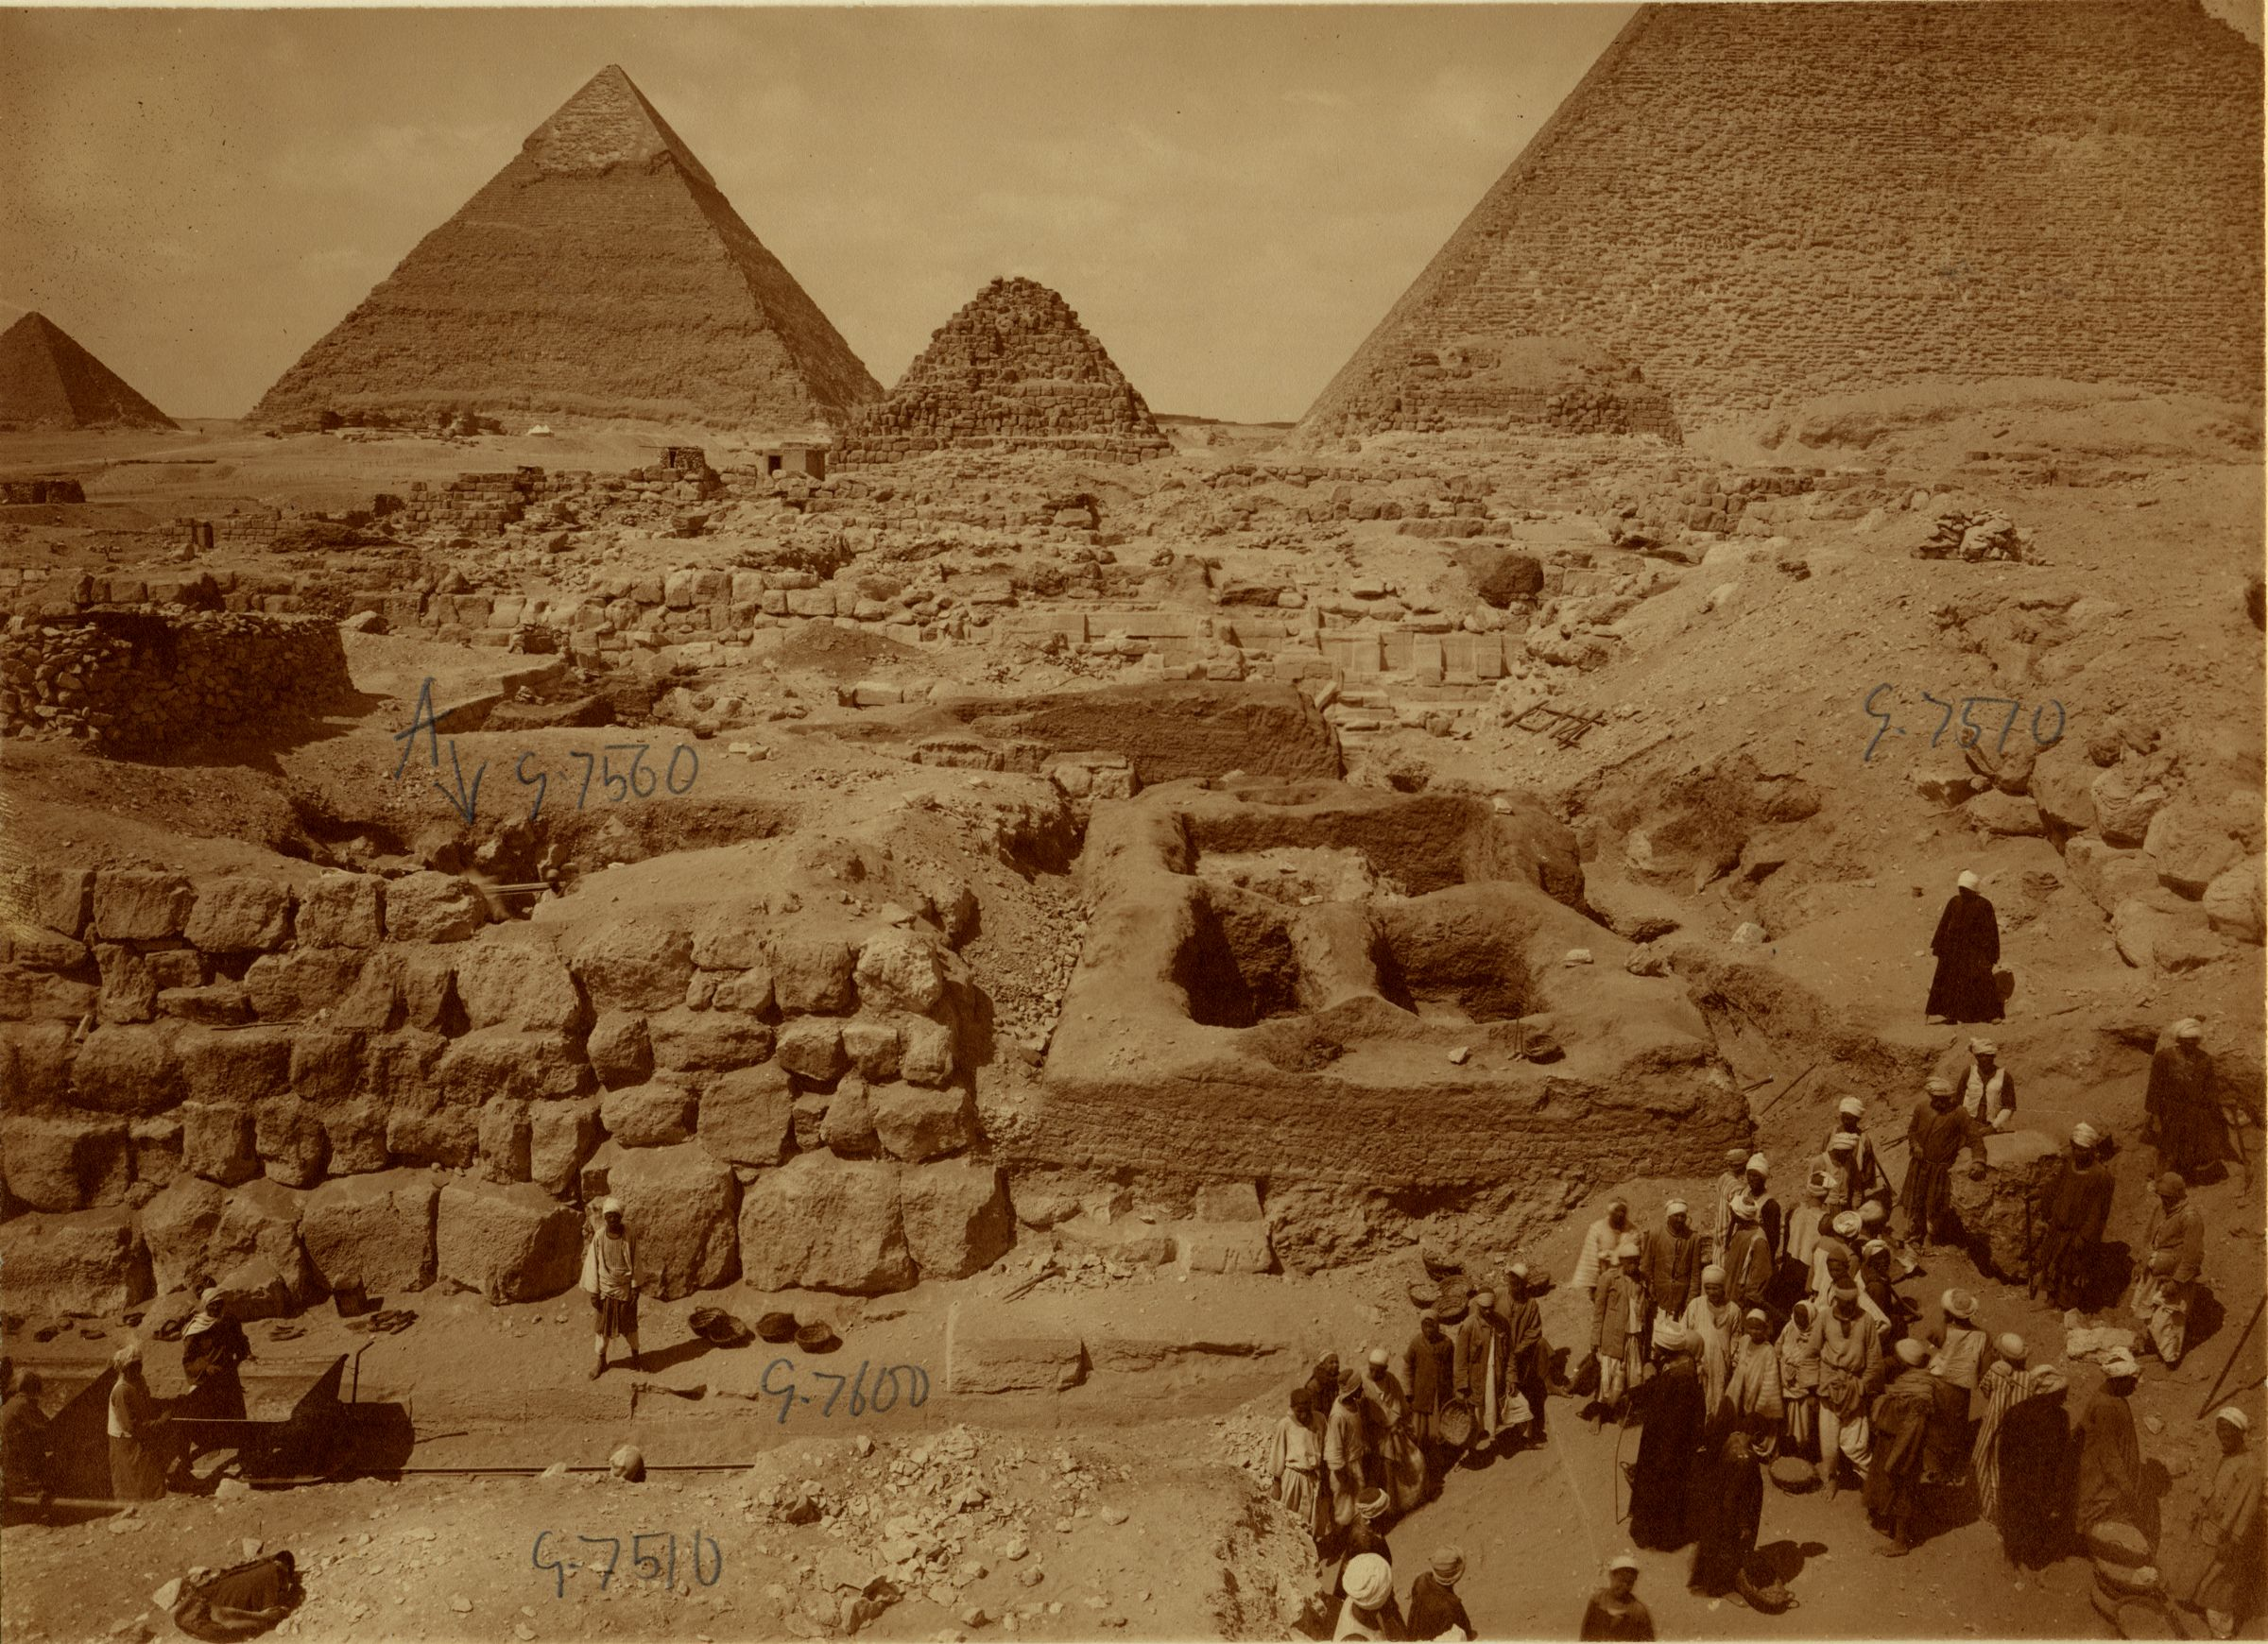 Eastern Cemetery: Site: Giza; View: street G 7600, G 7560, G 7651, G 7510